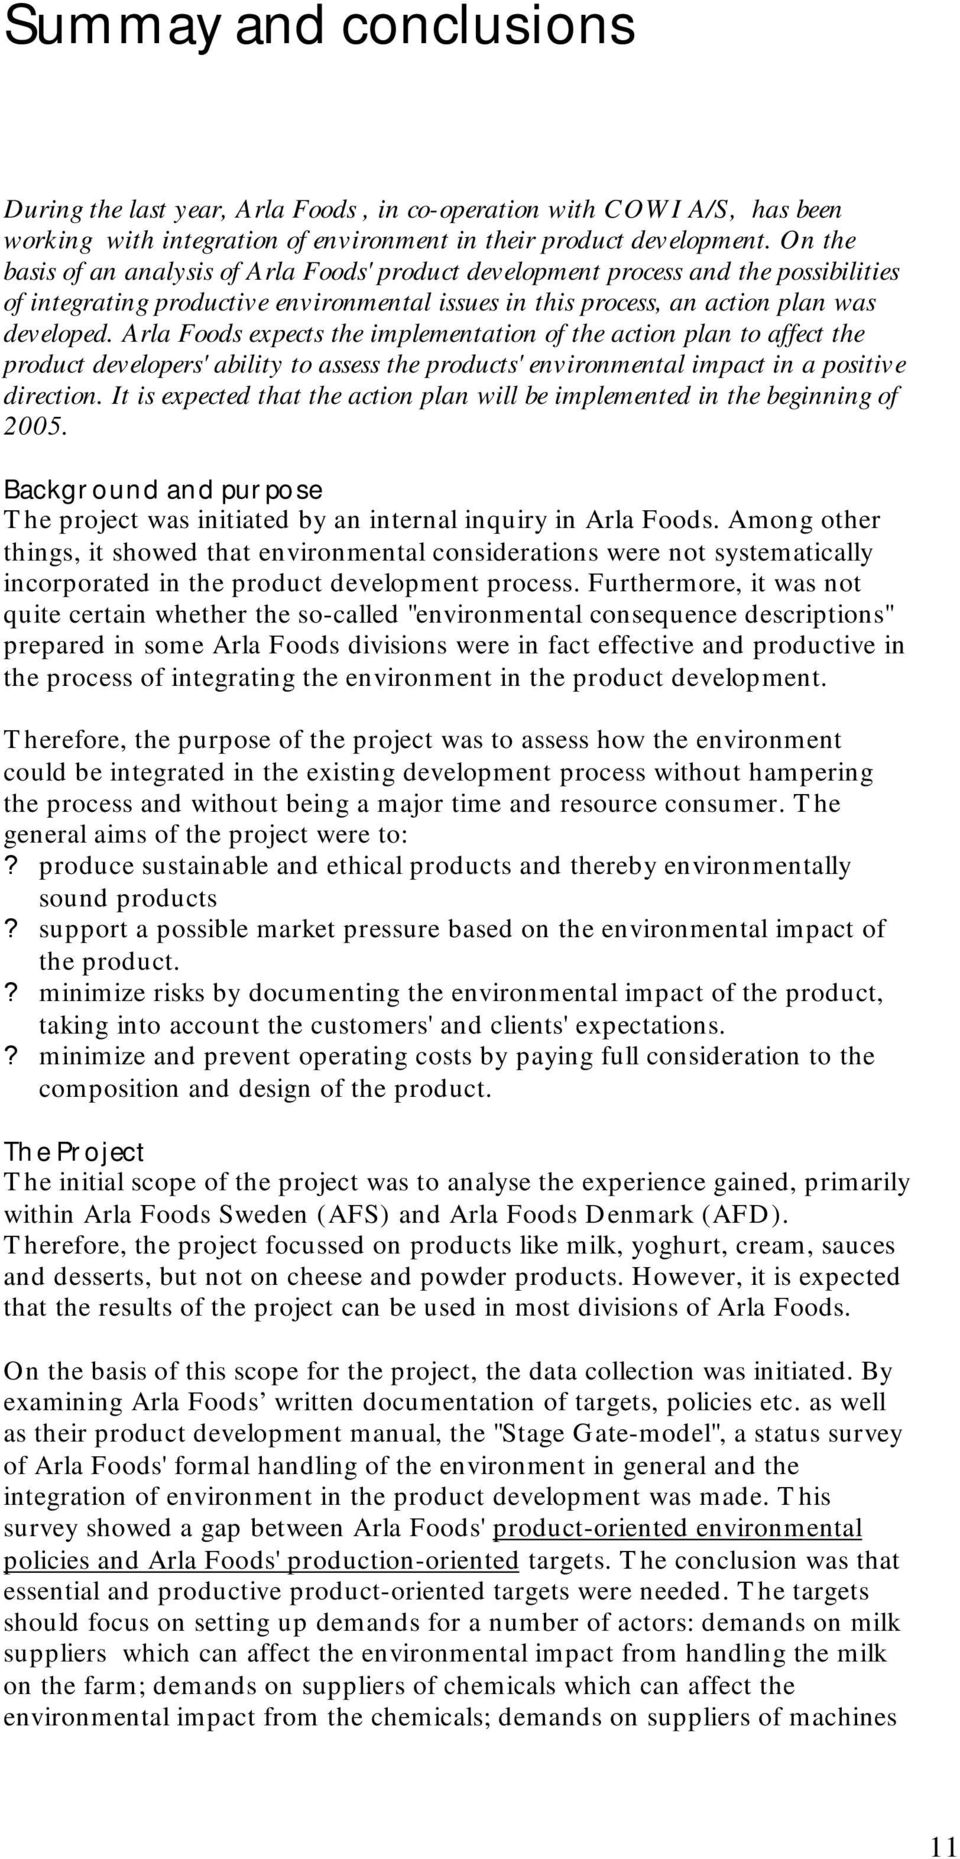 Arla Foods expects the implementation of the action plan to affect the product developers' ability to assess the products' environmental impact in a positive direction.